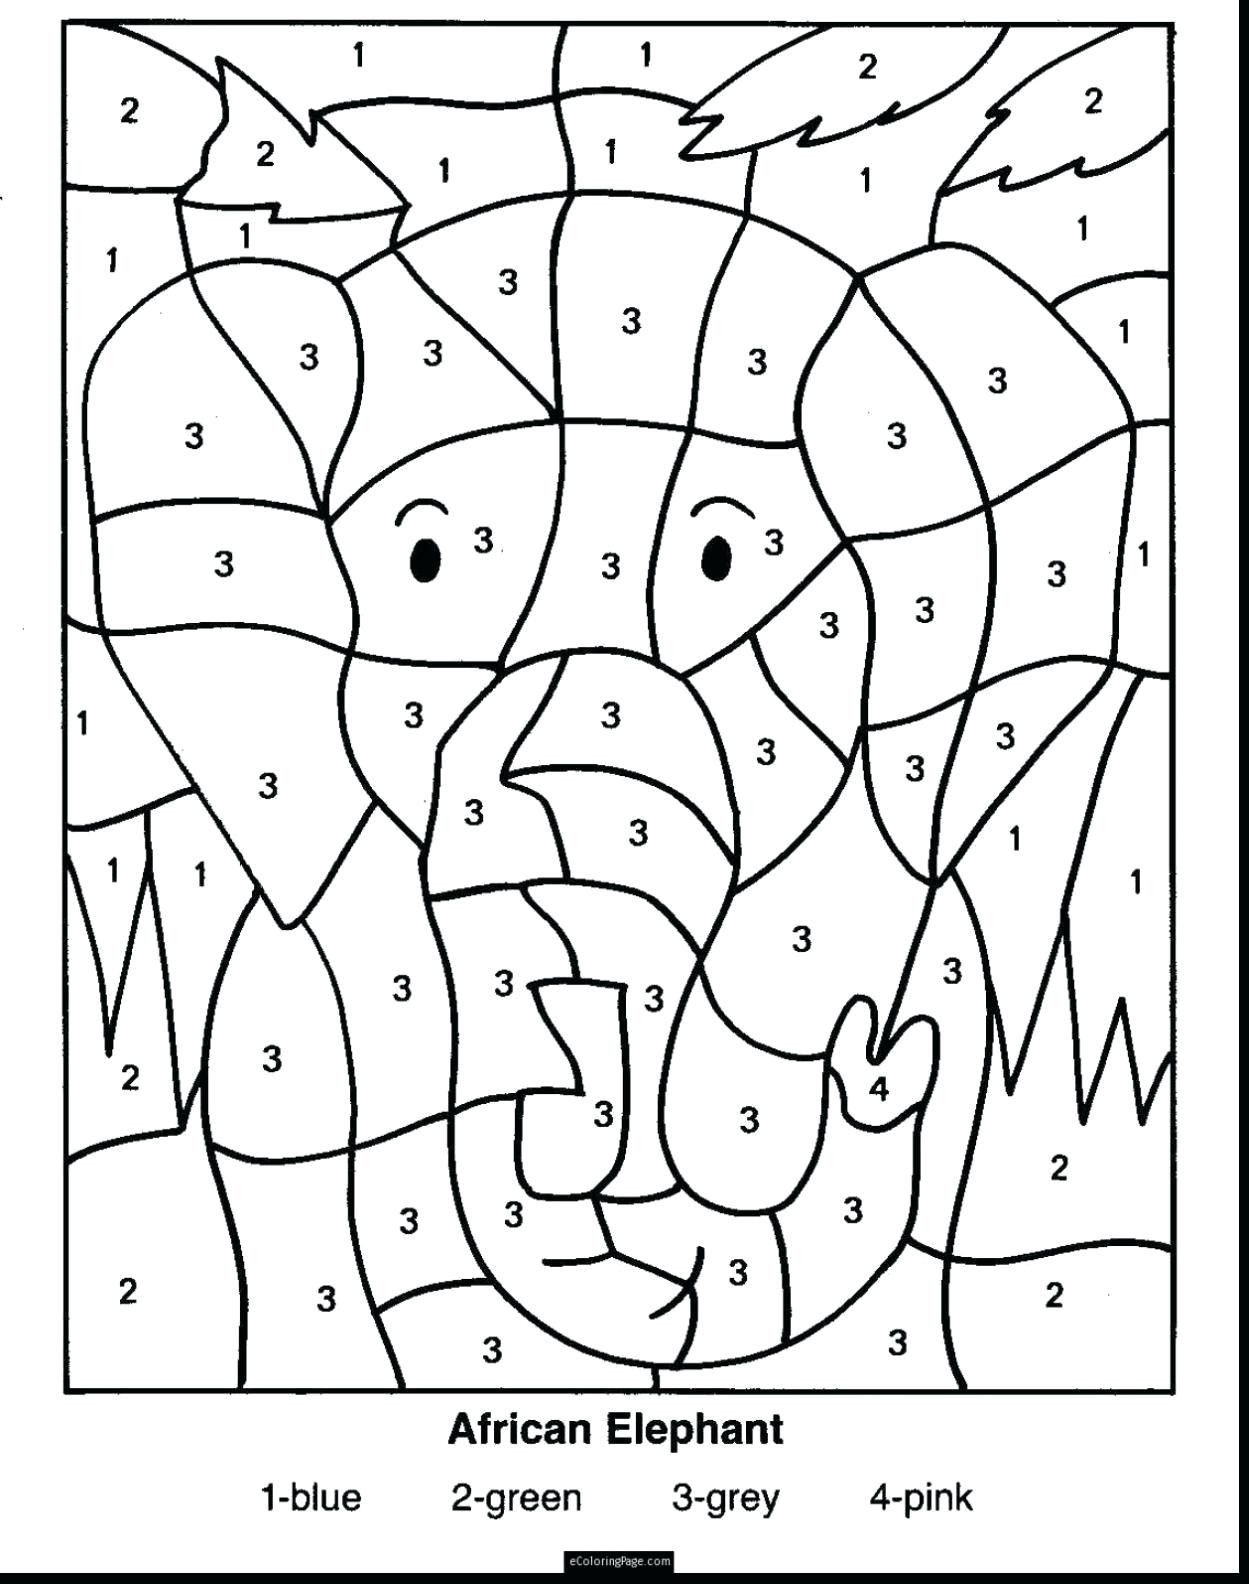 Coloring Worksheets for 3rd Grade 3 Free Math Worksheets Third Grade 3 Division Division Facts